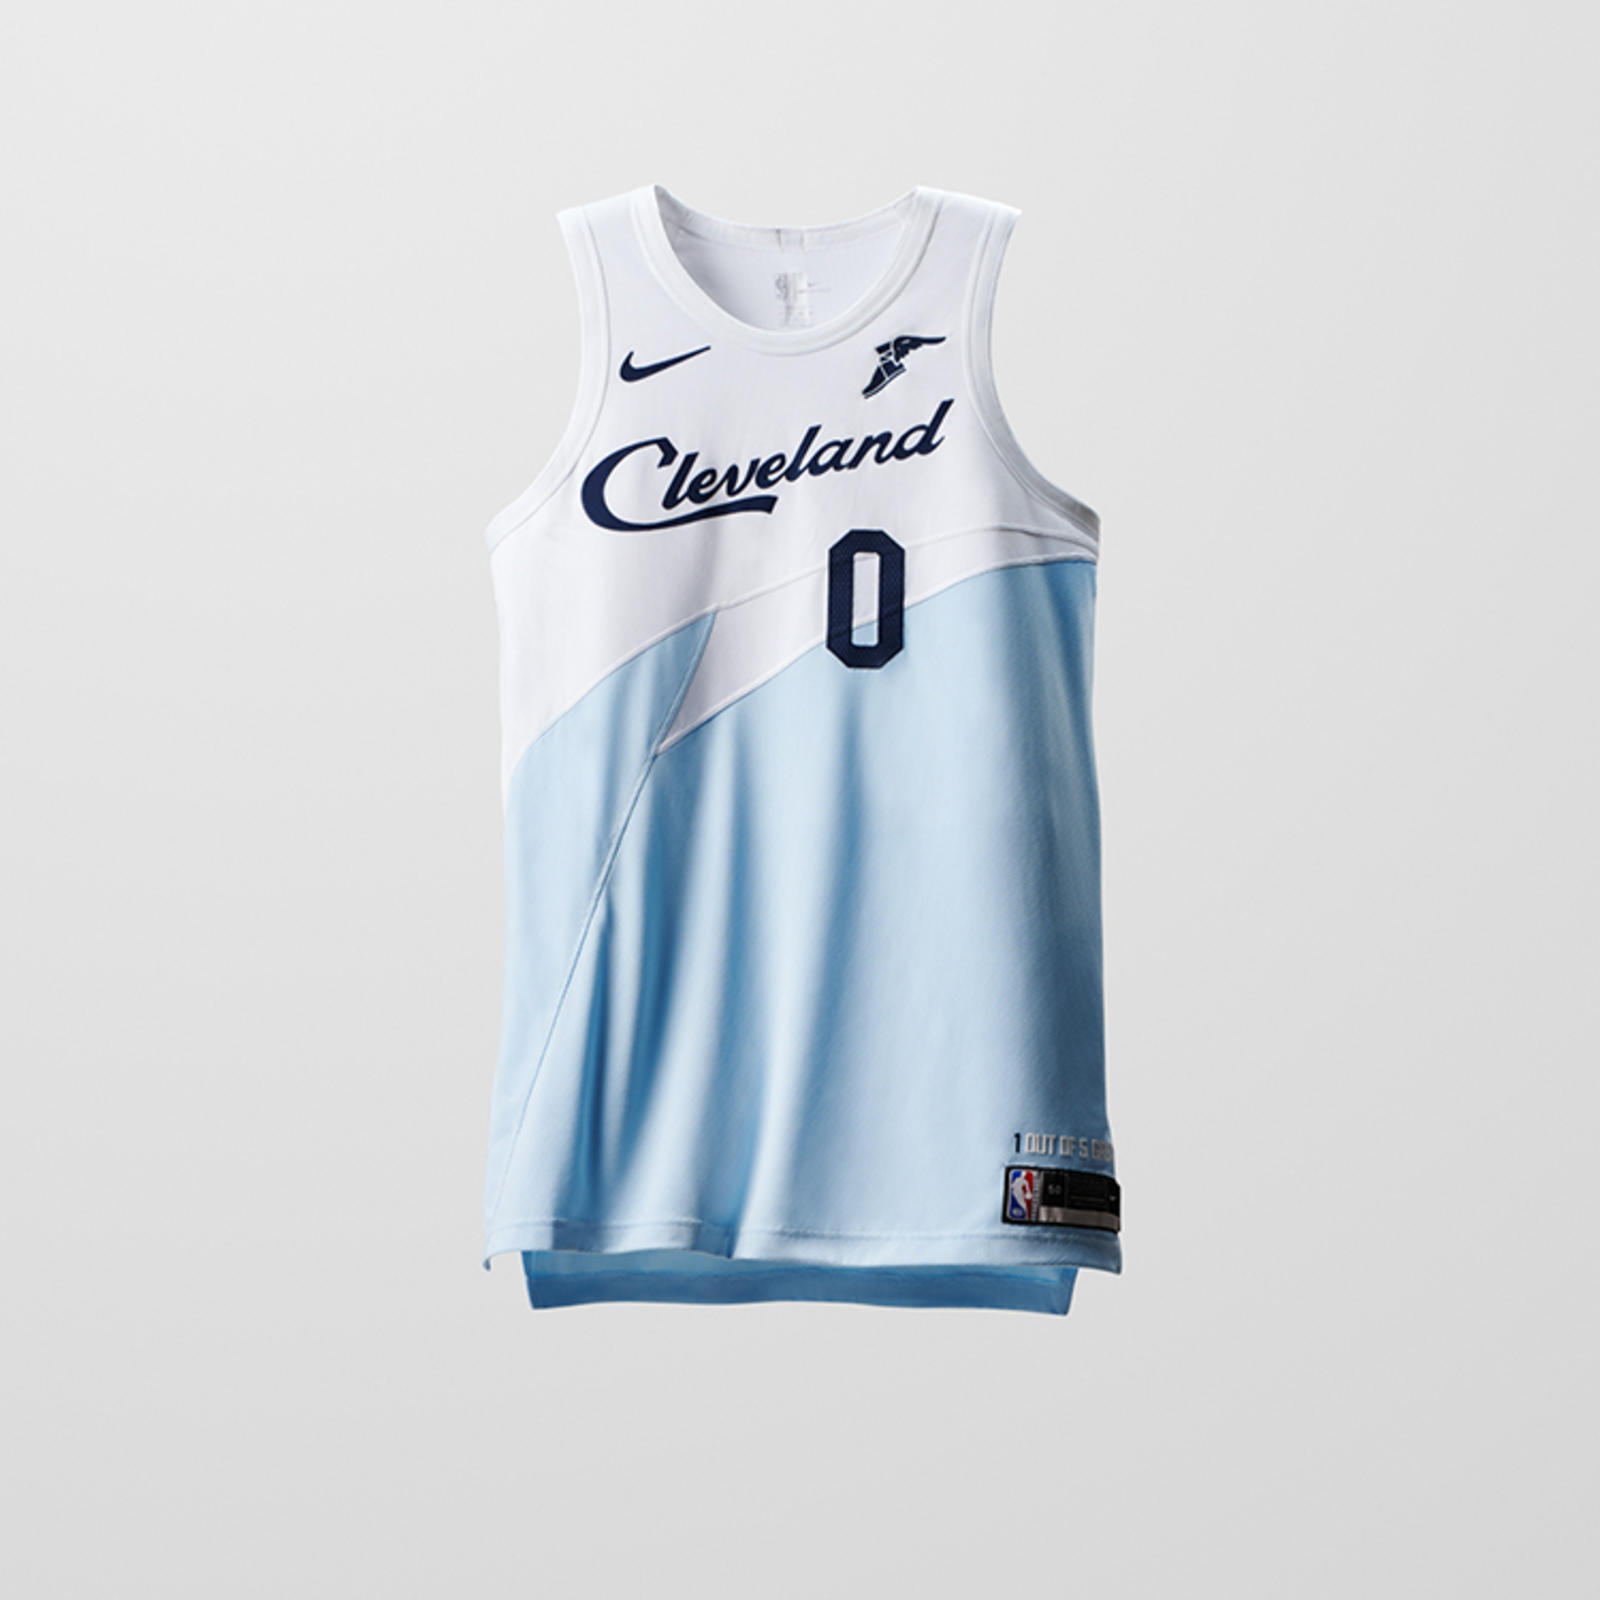 Consulta Por cierto Interpretativo  NBA Earned Edition Uniforms - Nike News